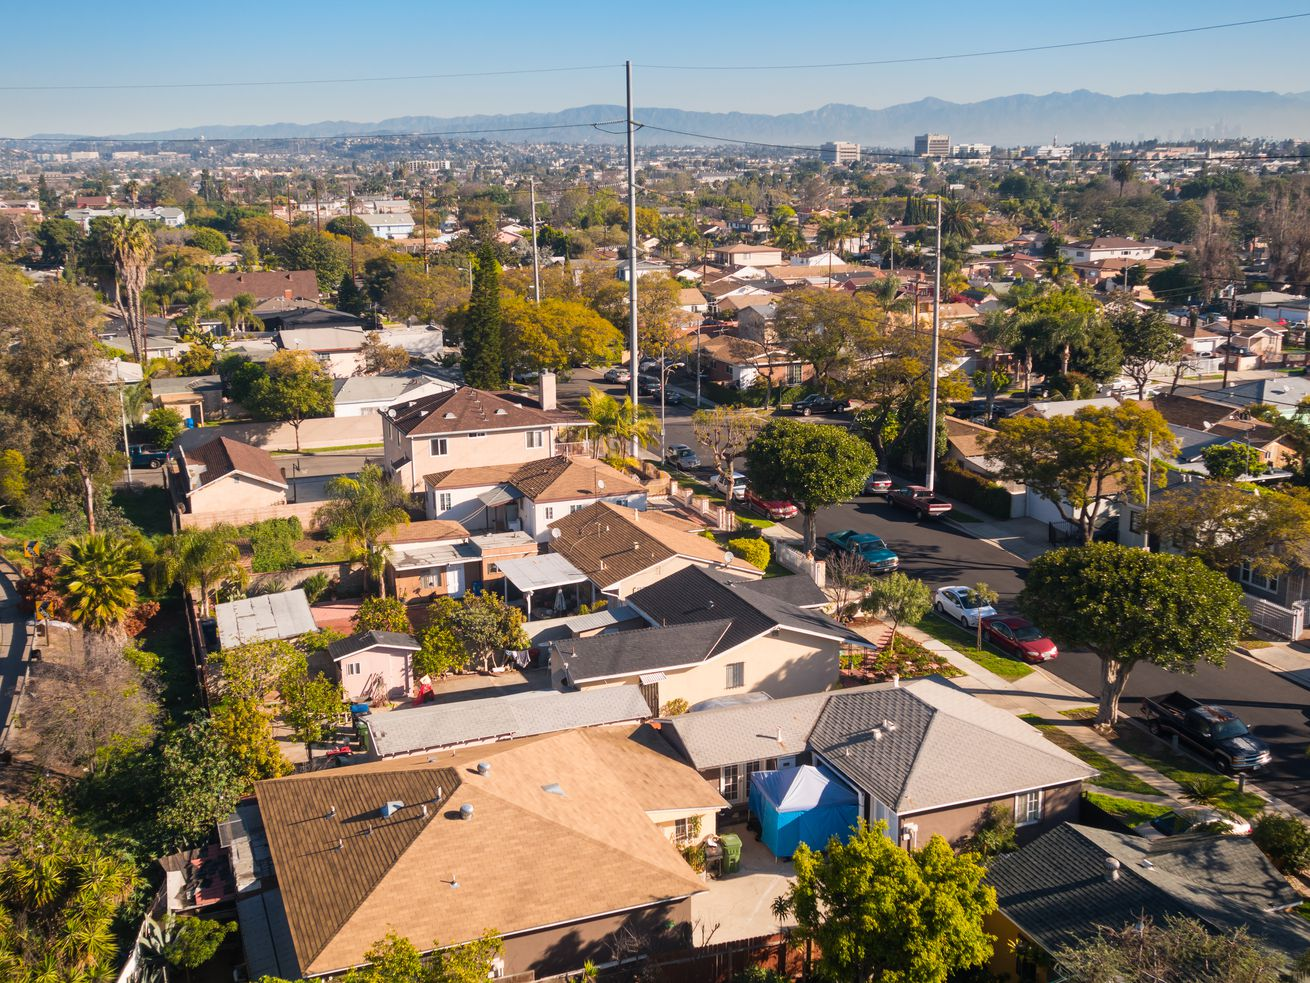 The city of Inglewood enacted a 45-day moratorium on rent hikes above 5 percent.